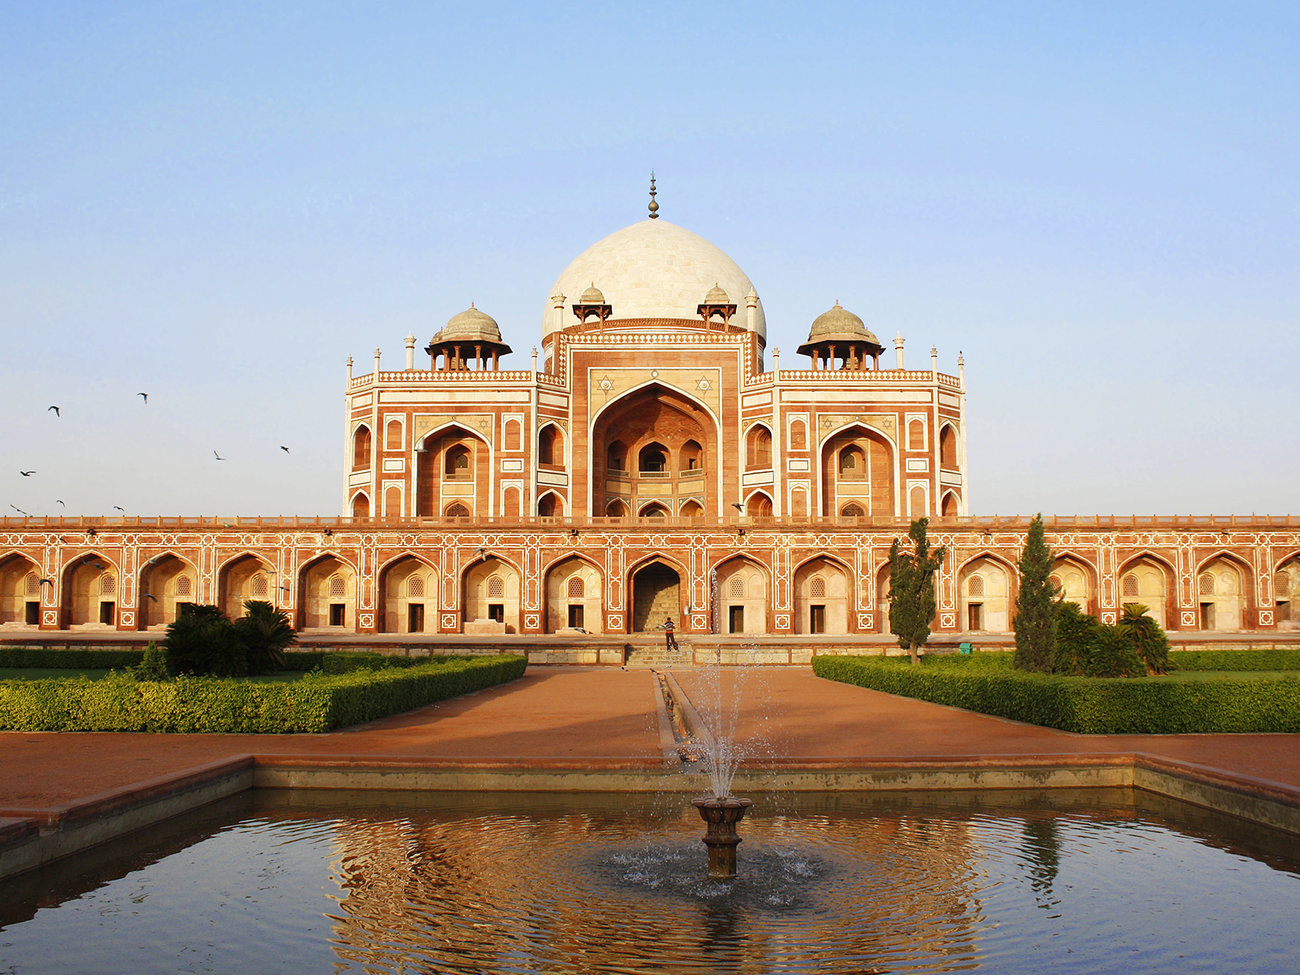 Humayun Tomb Mosque in Delhi